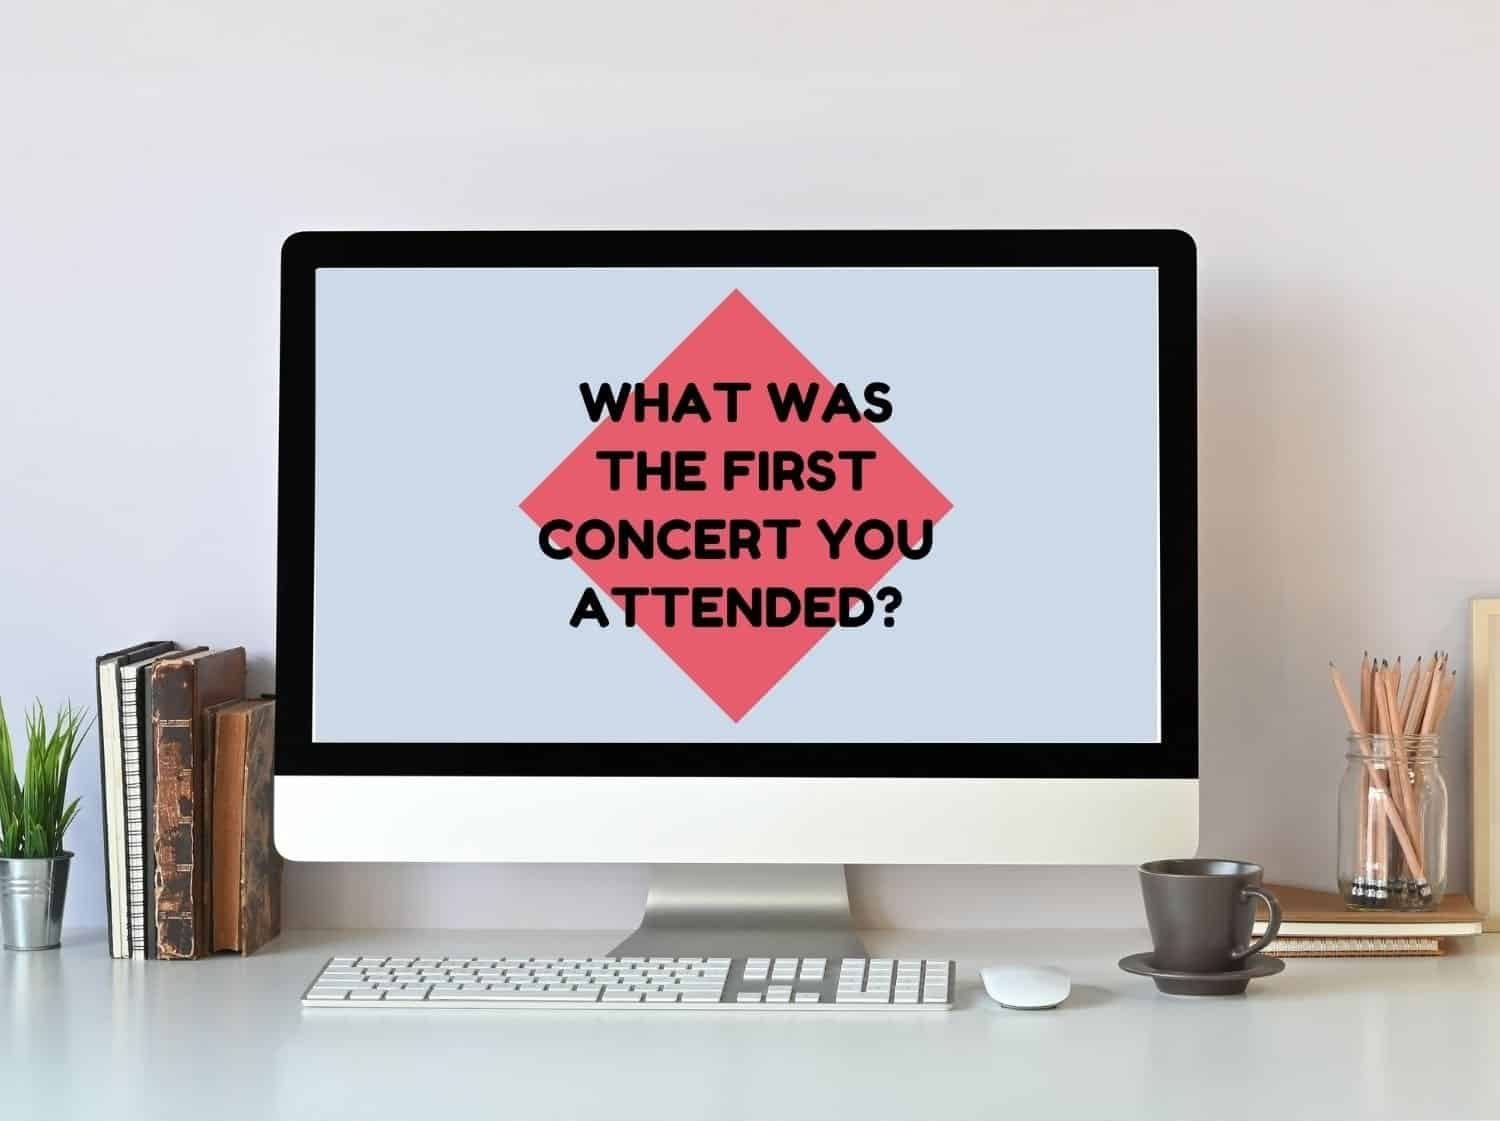 """A virtual conversation starter game is shown on a computer with the question """"What was the first concert you attended?"""""""